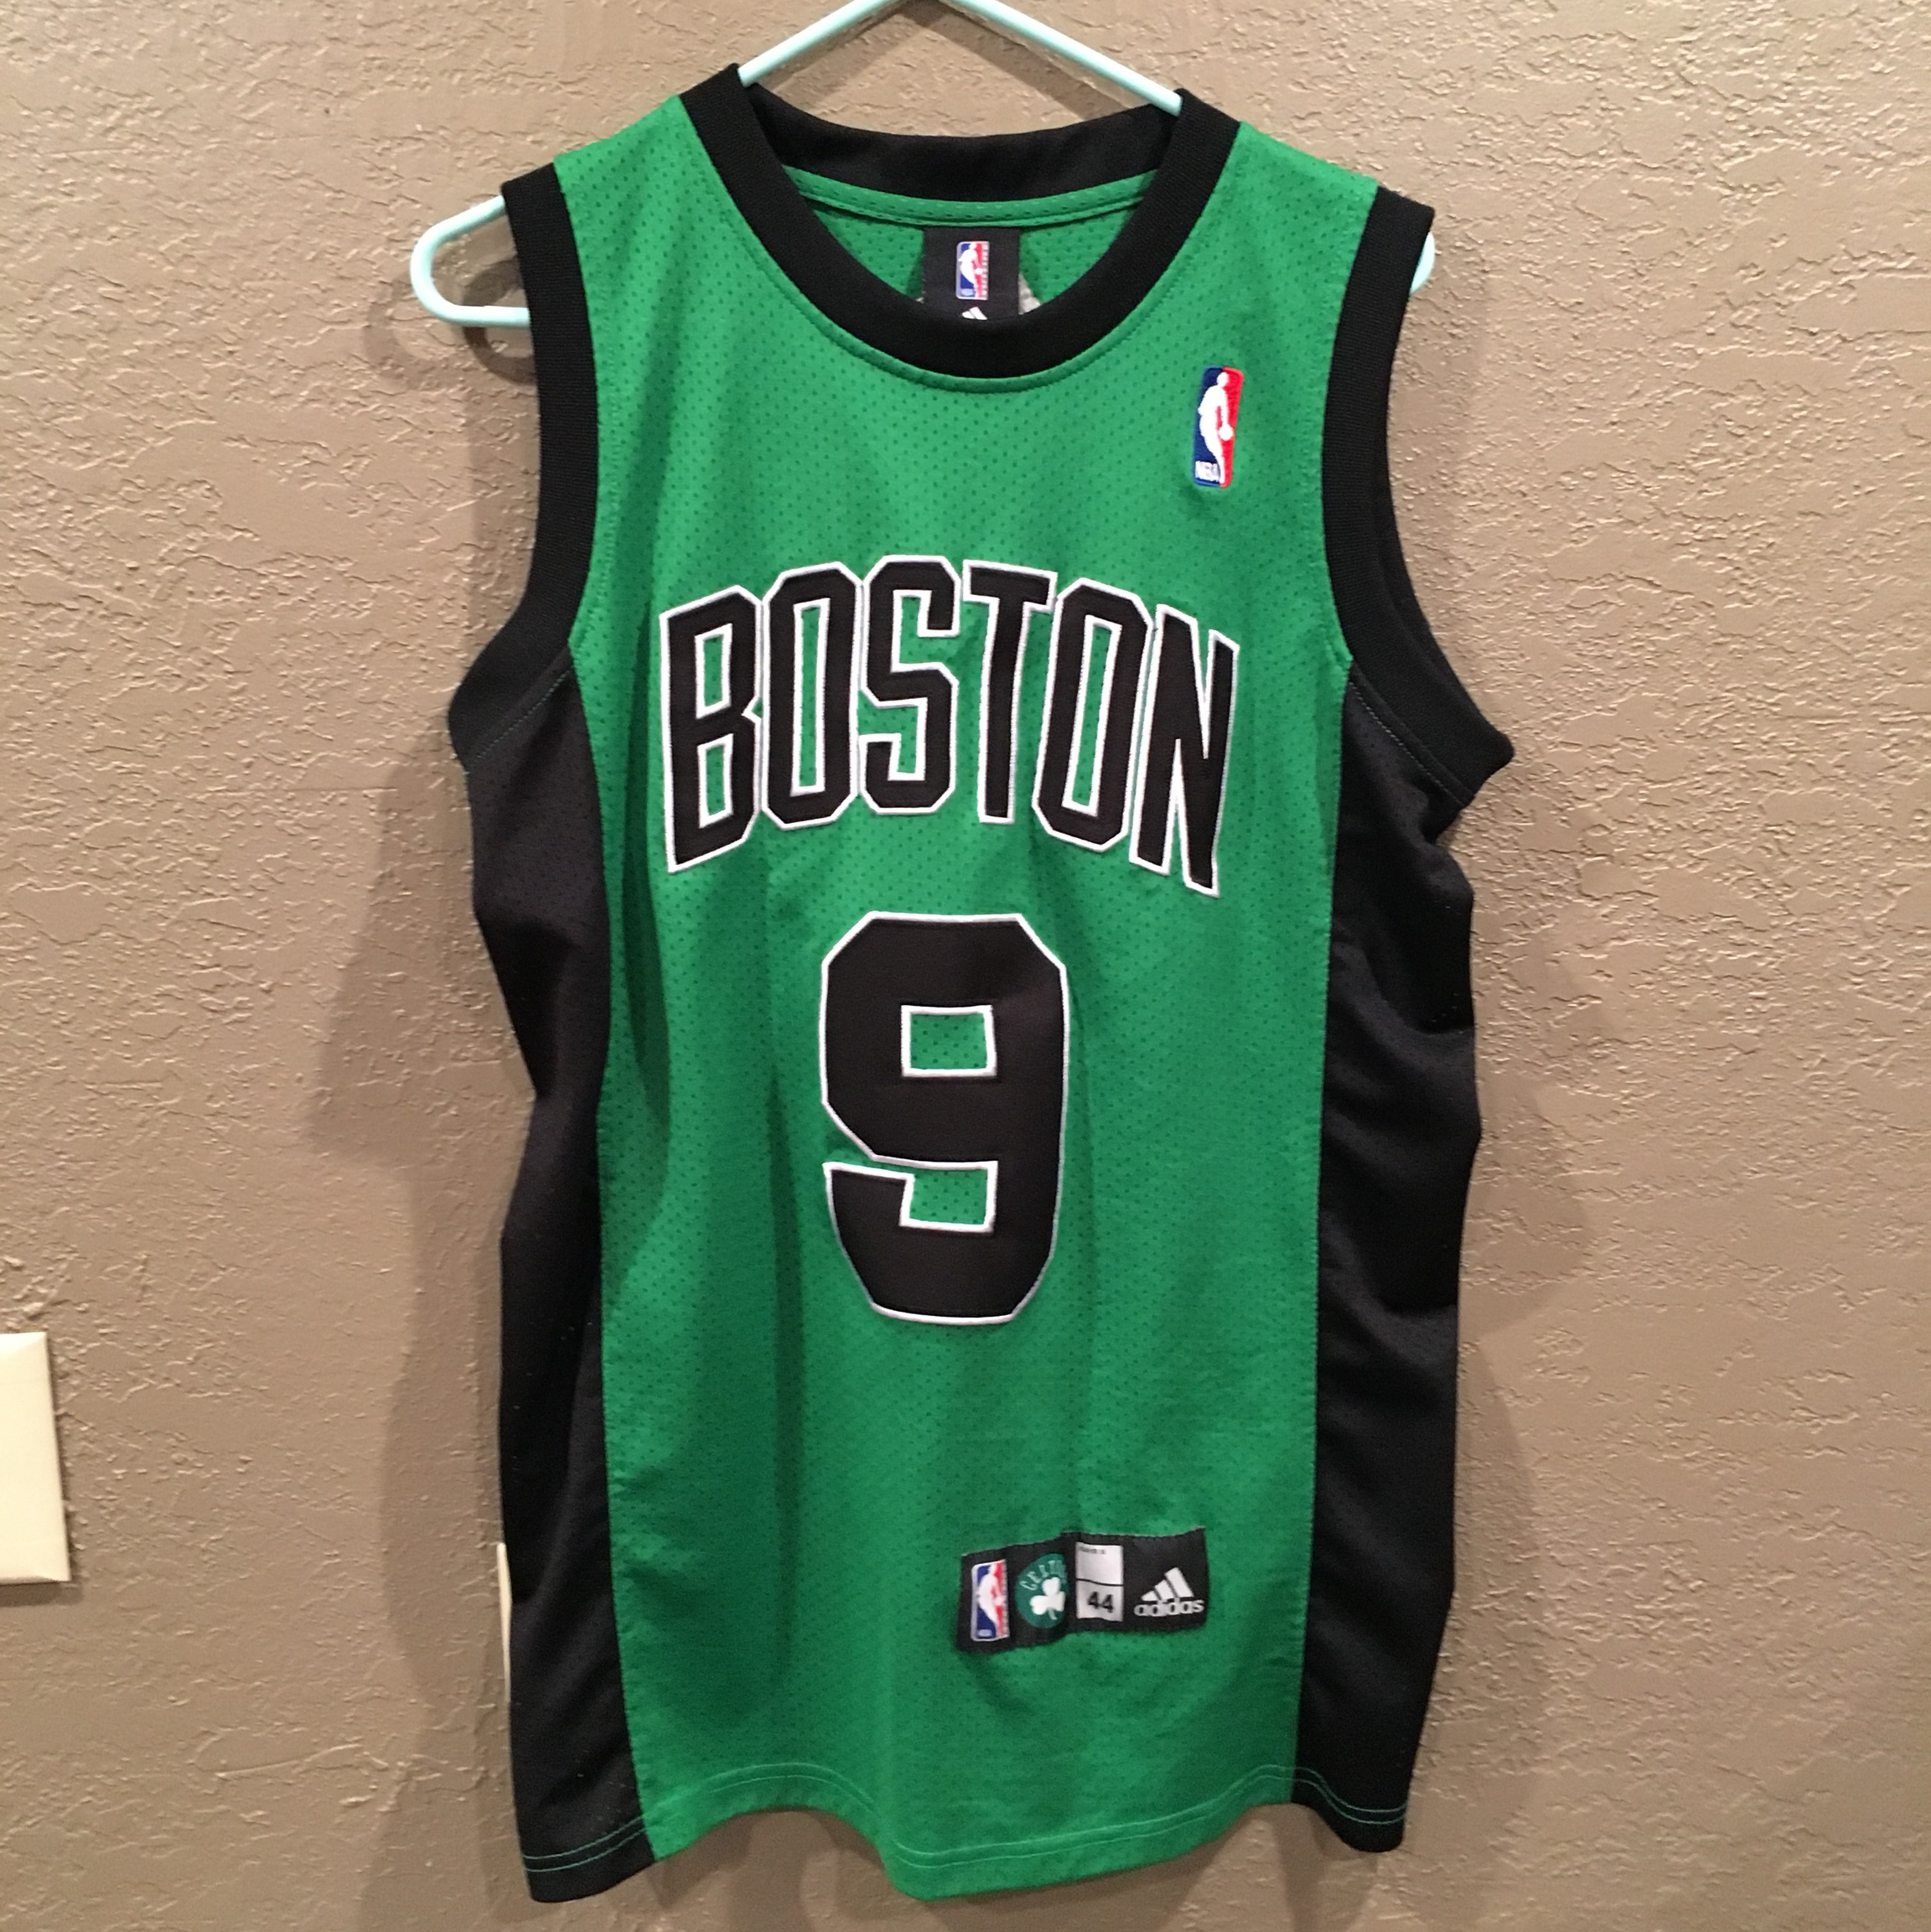 free shipping 89318 fbbc1 Vintage Boston Celtics jersey size medium #vintage... - Depop